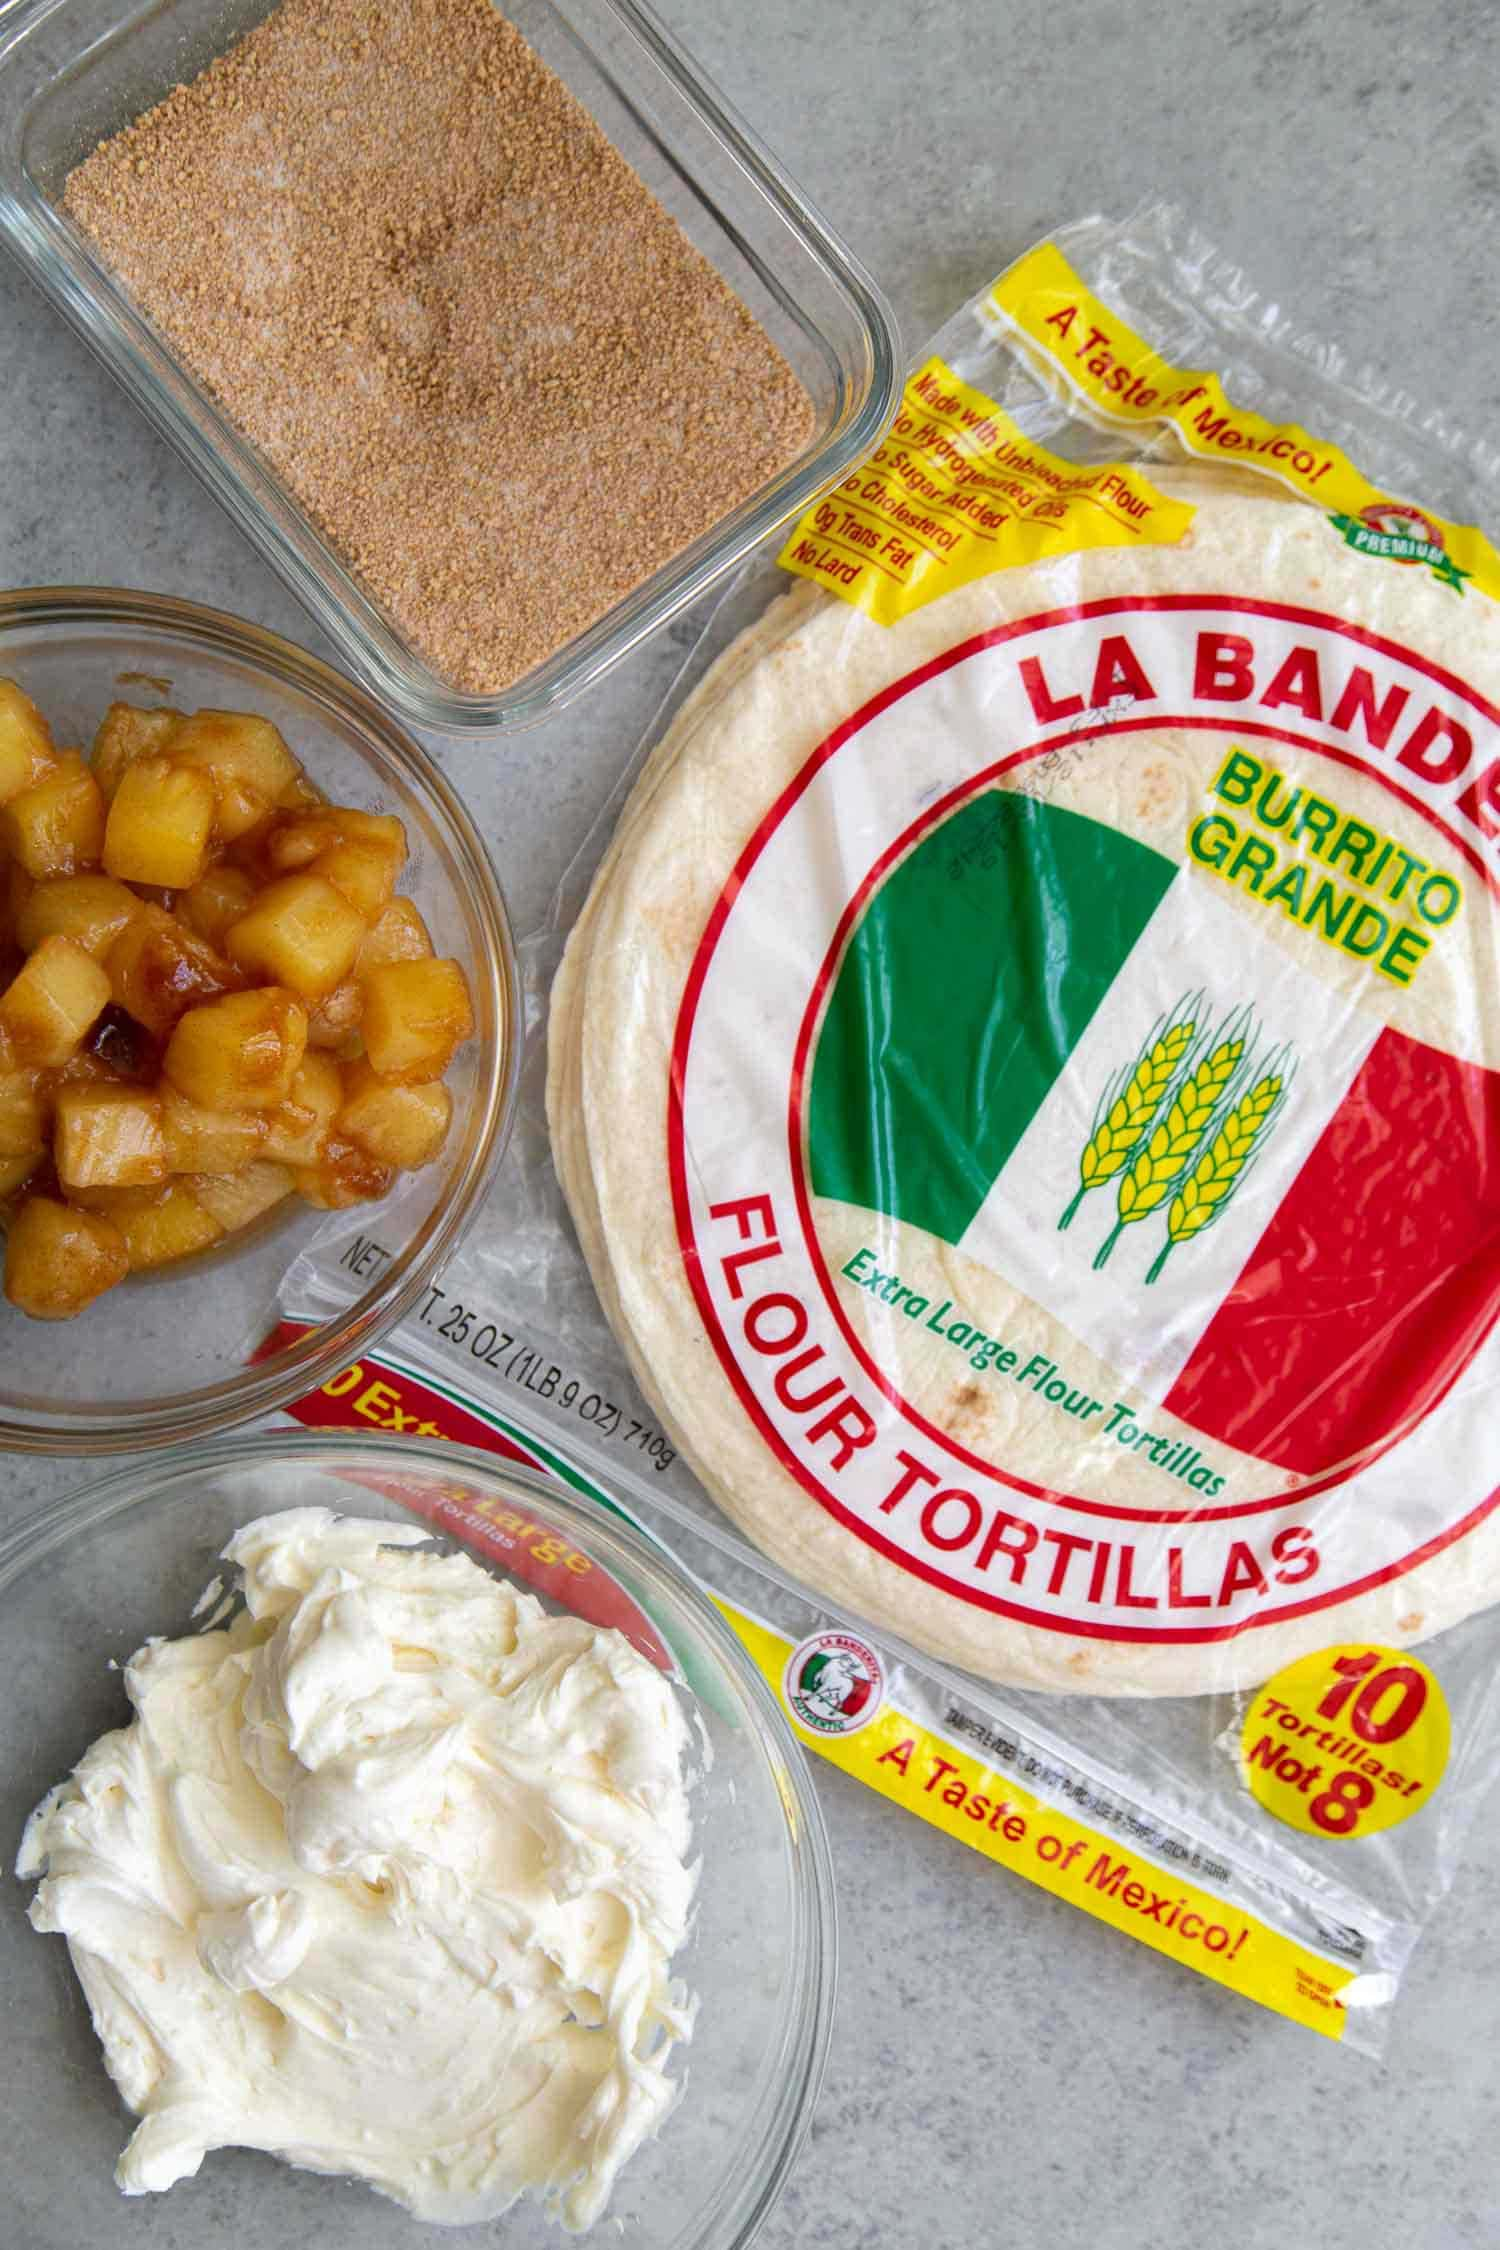 Ingredients needed for Pineapple Cheesecake Chimichangas: La Banderita 10-inch flour tortillas, vanilla cream cheese mixture, cinnamon spiced pineapples, and graham cracker crumb mixture